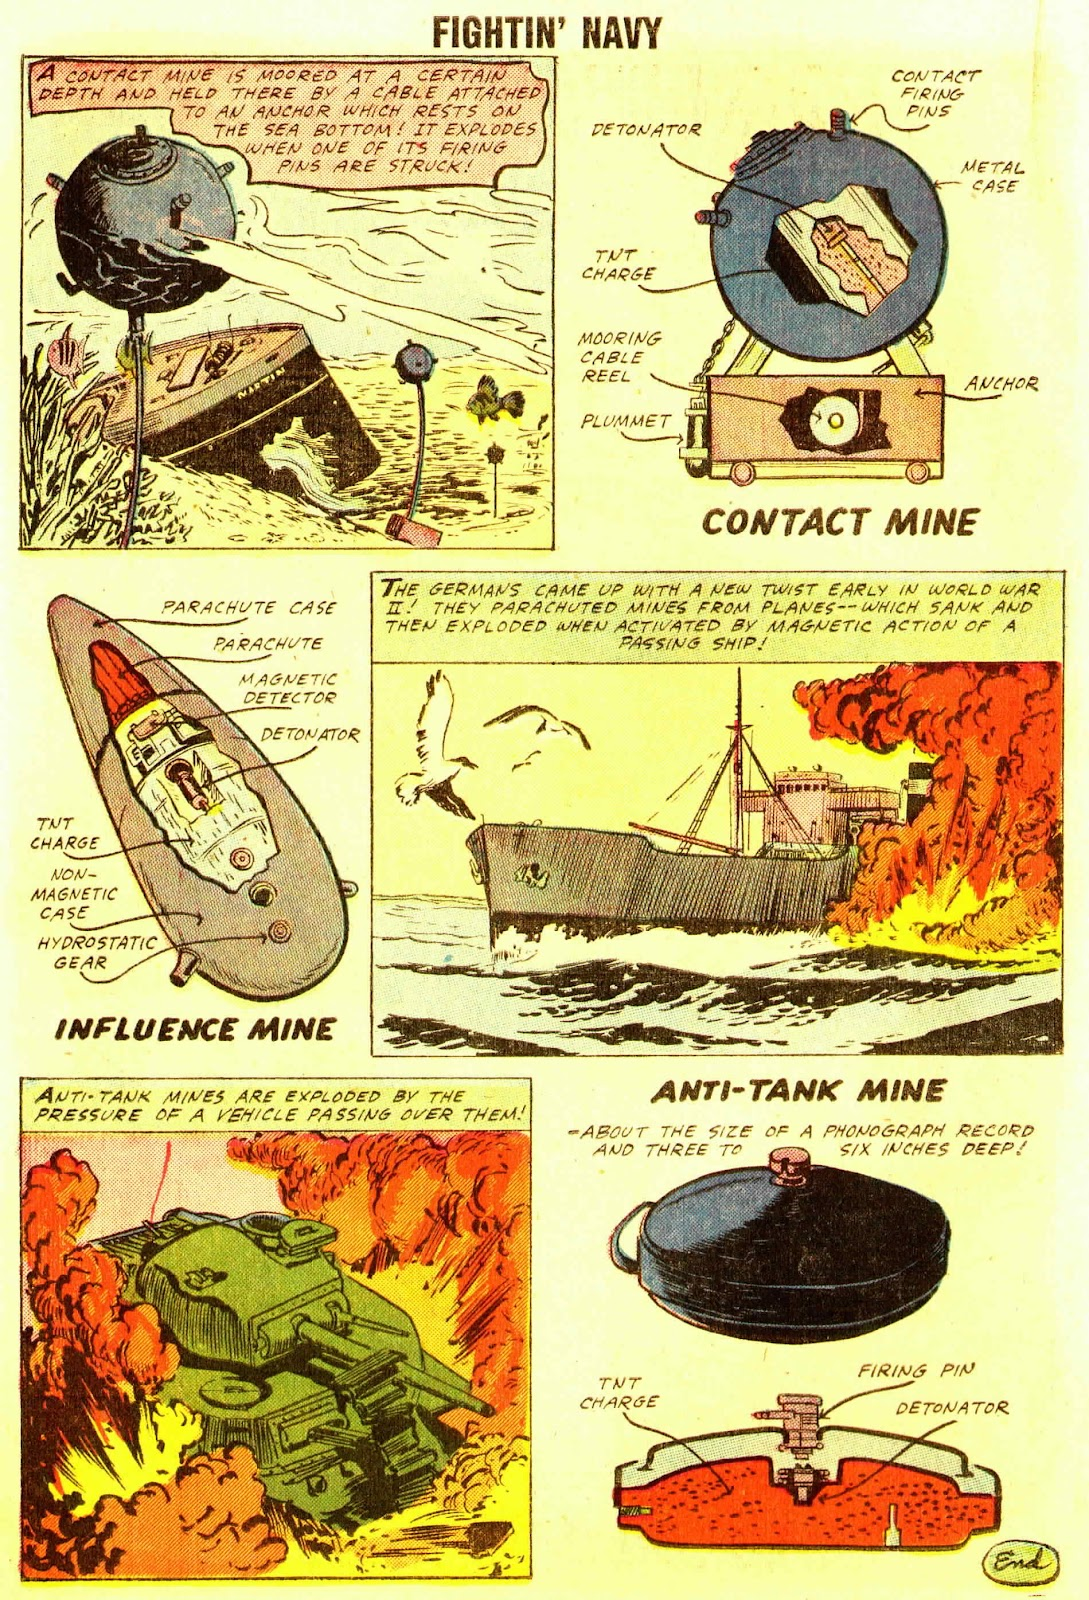 Read online Fightin' Navy comic -  Issue #83 - 26